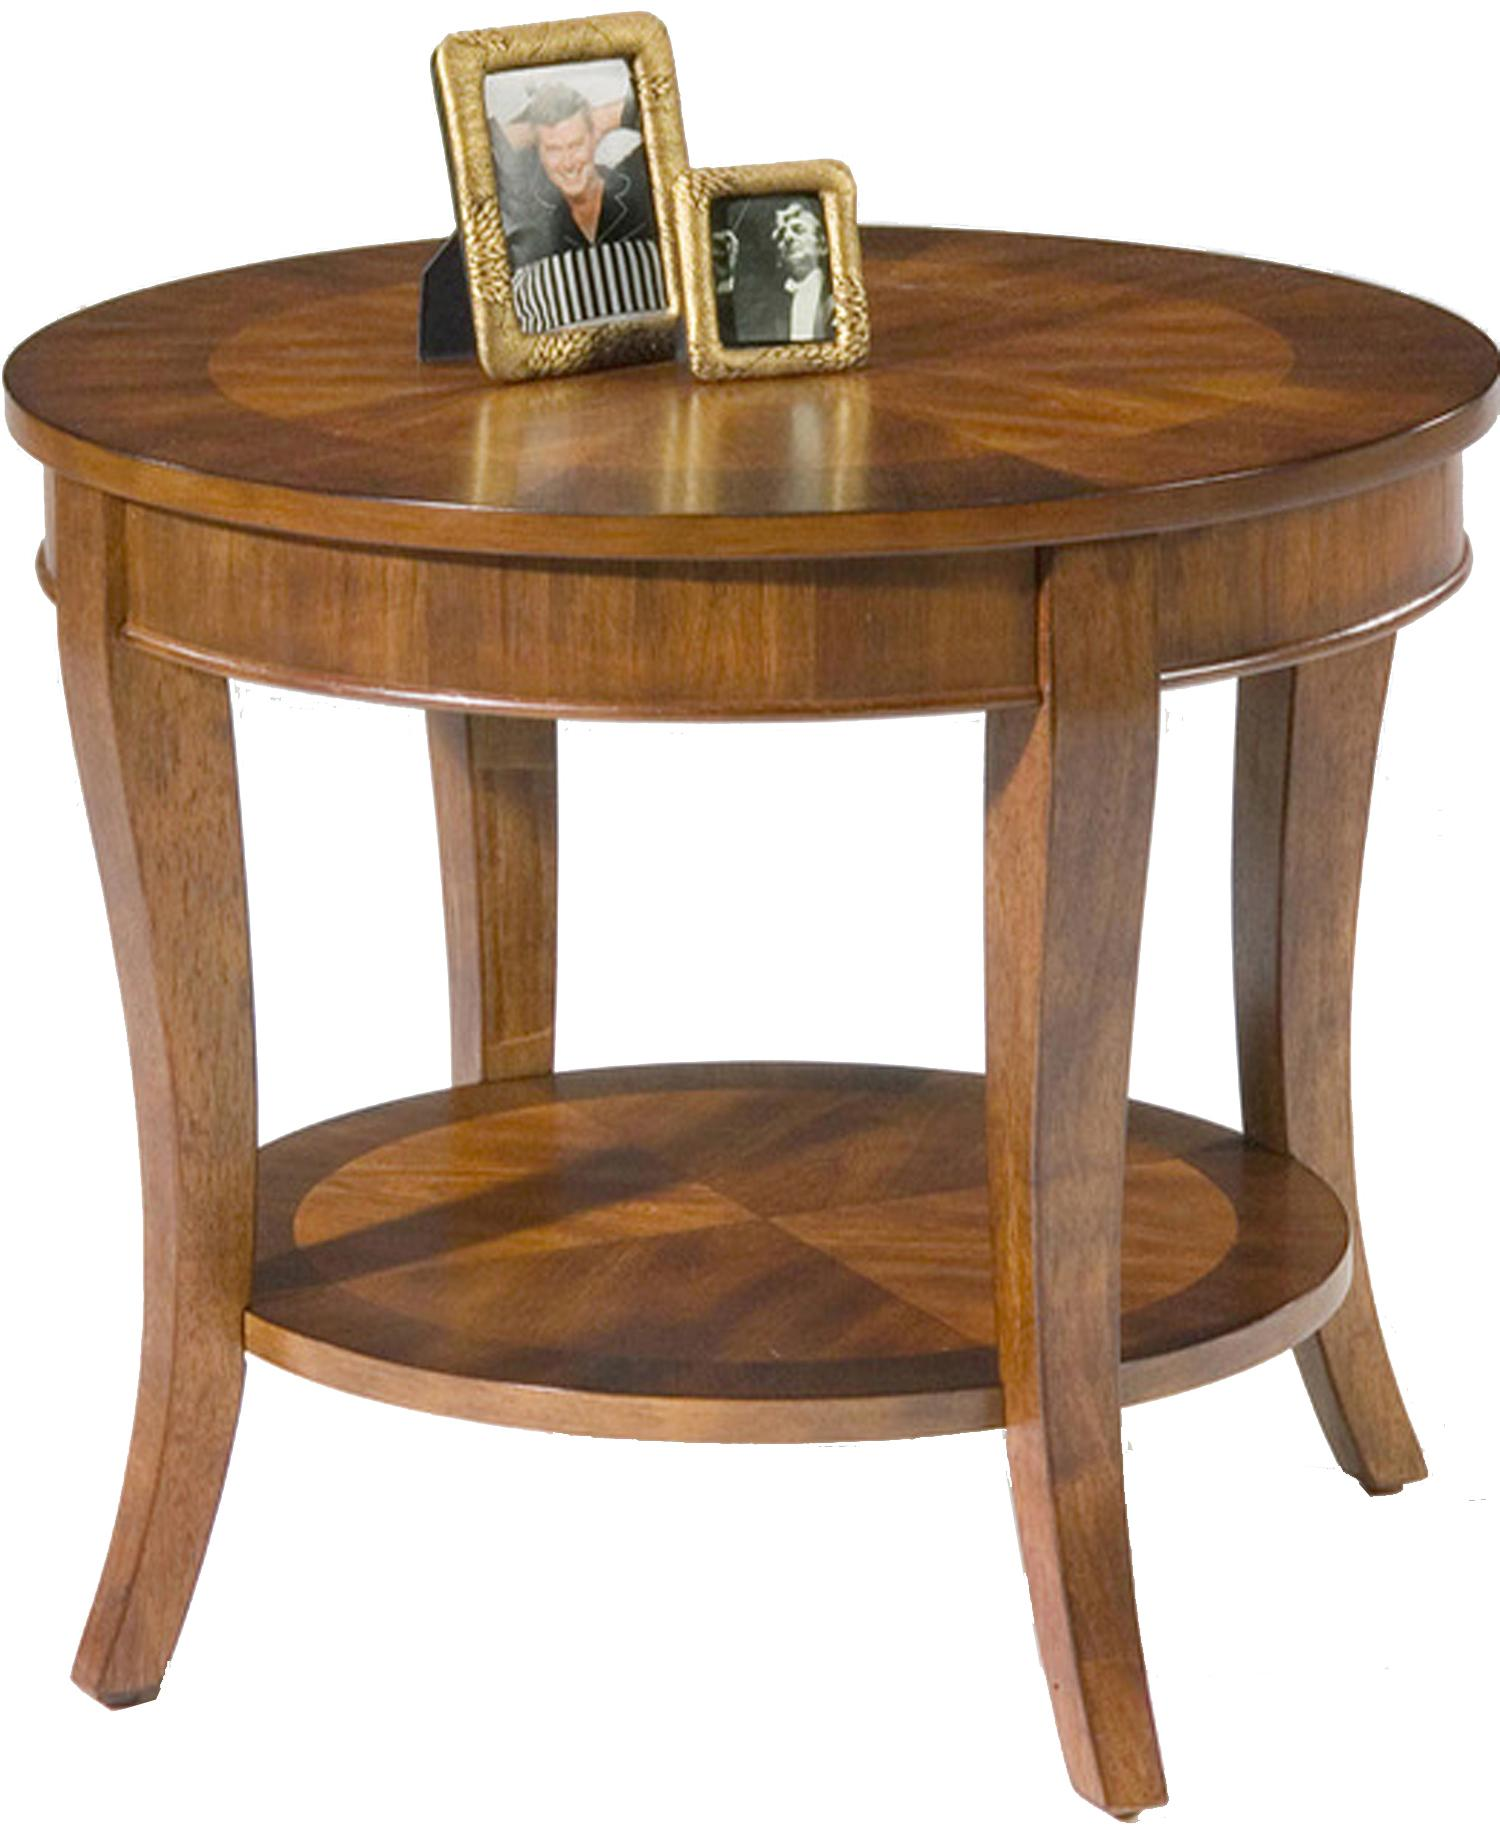 liberty furniture bradshaw round end table with shelf products color elegant wood tables black wicker outdoor old antique coffee diy pallet patio plans french provincial ashley